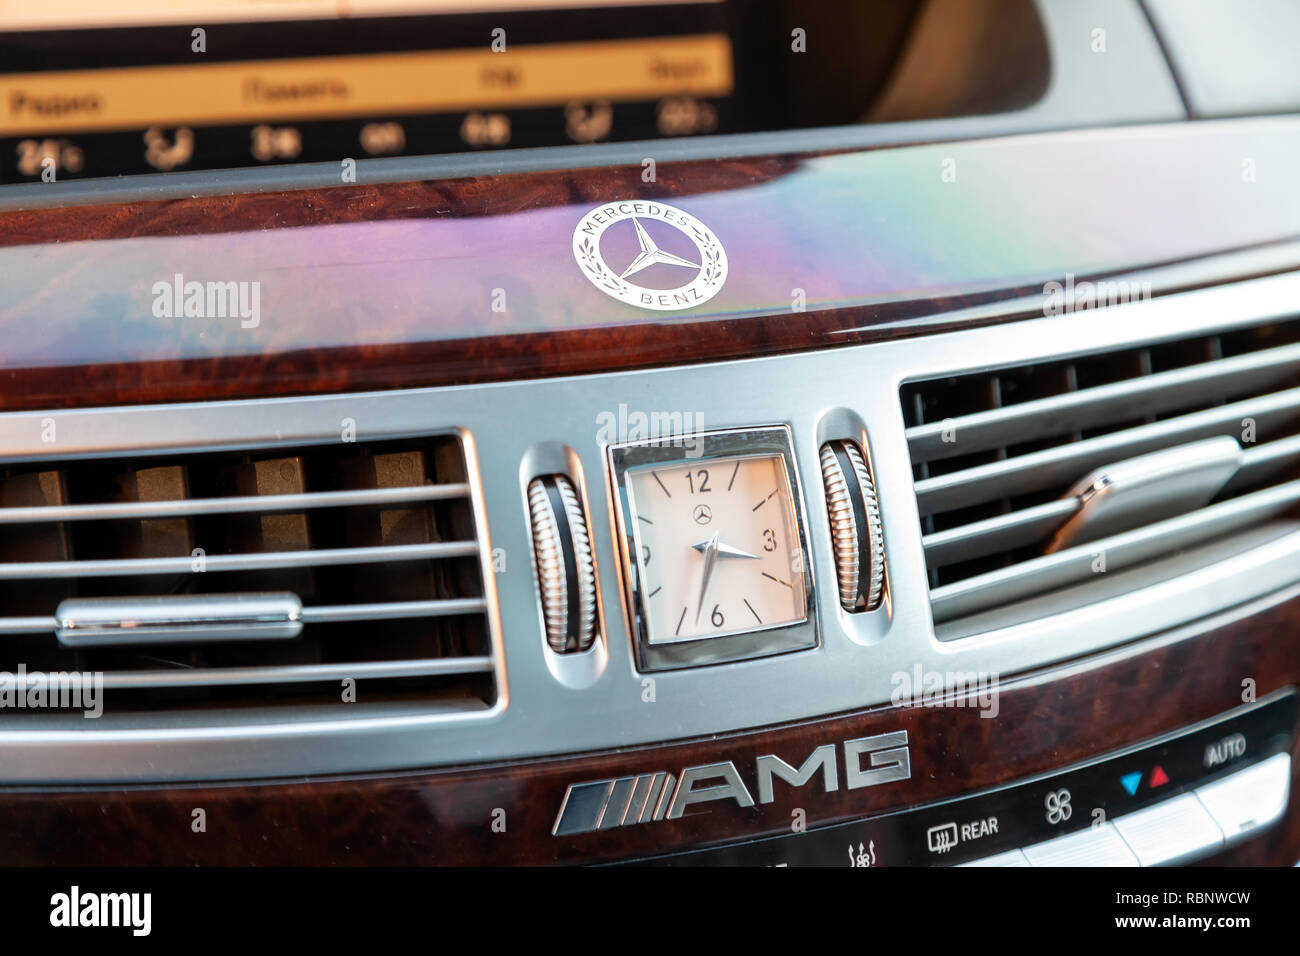 Novosibirsk, Russia - 08.01.2018: The central control console in the interior of the car Mercedes Benz model AMG with a clock face on the panel and el - Stock Image